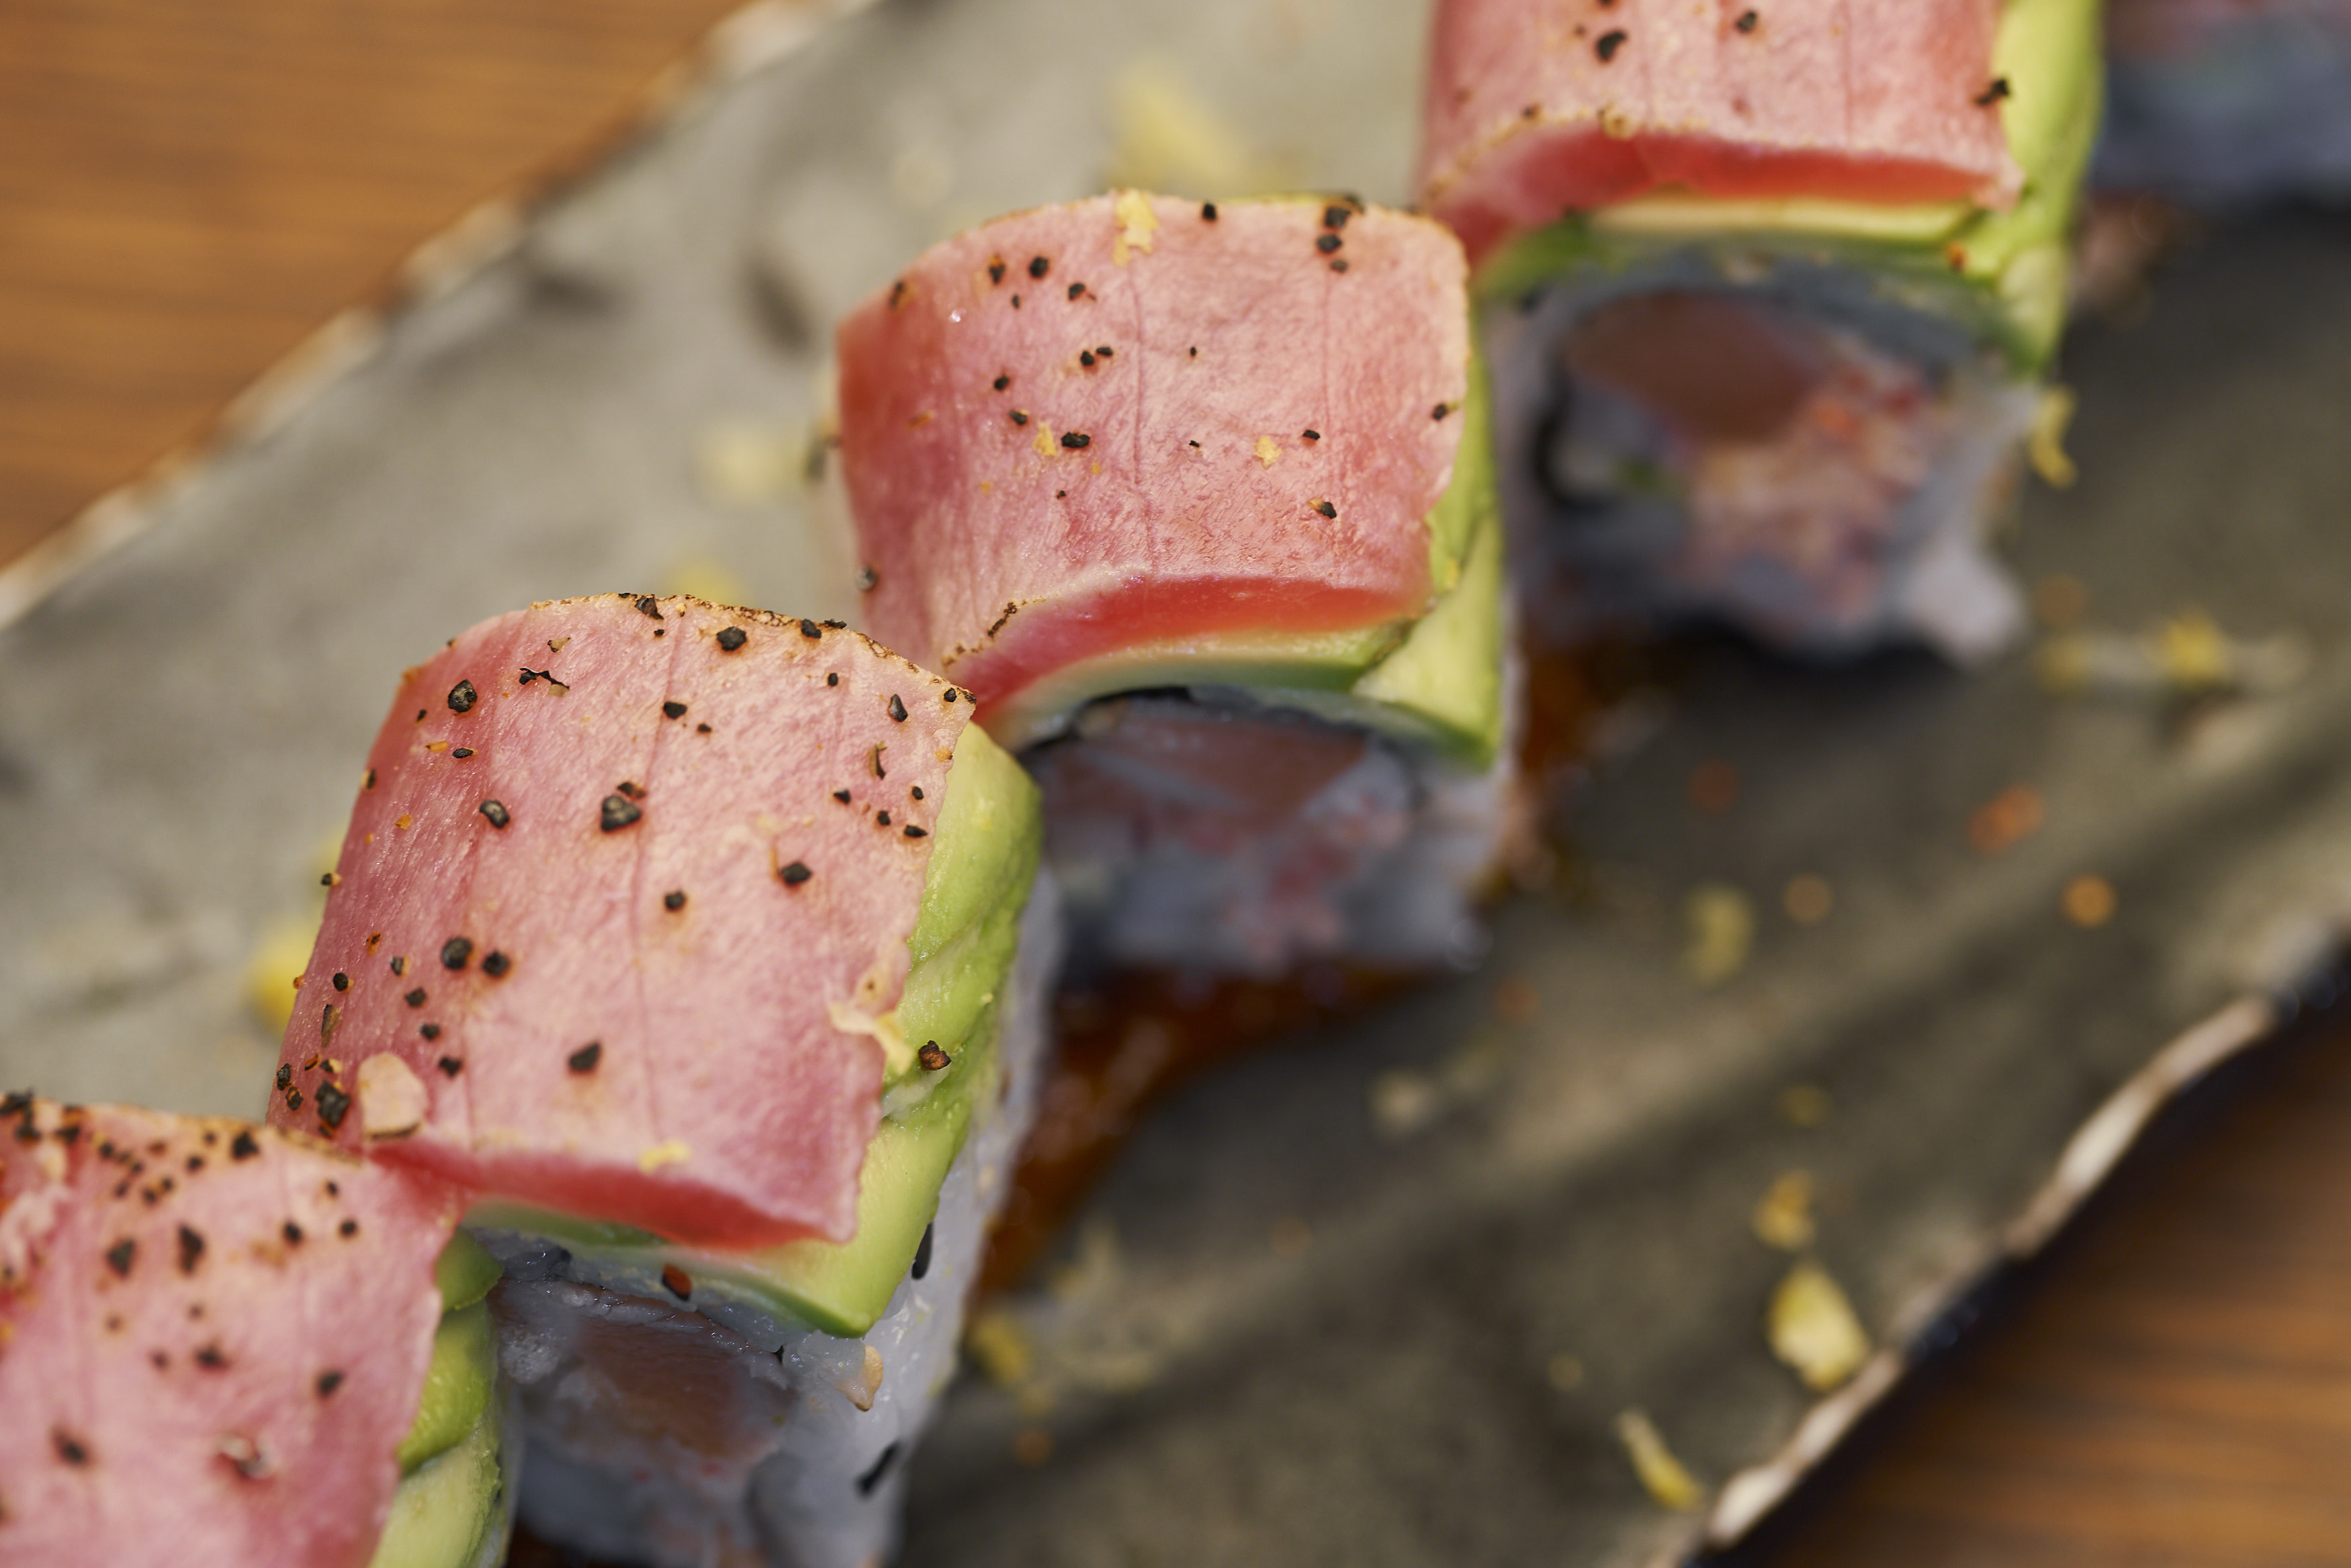 Maki Roll to celebrate the 2019 International Sushi Day in Doral